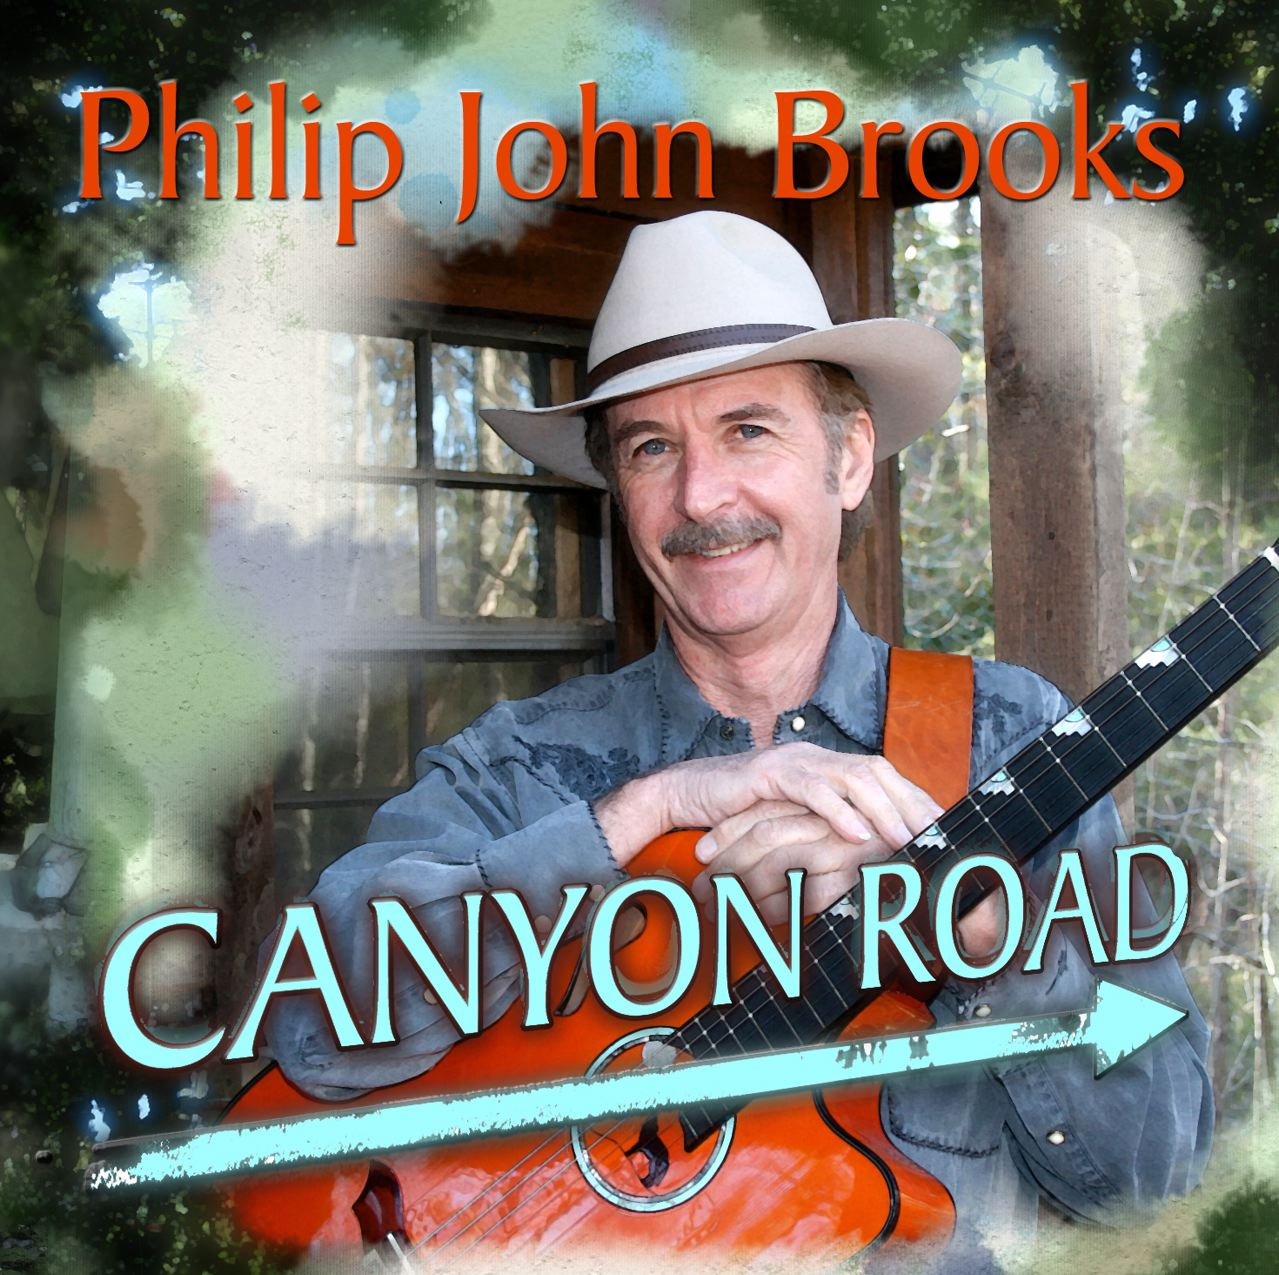 [Canyon+Road+album+cover]